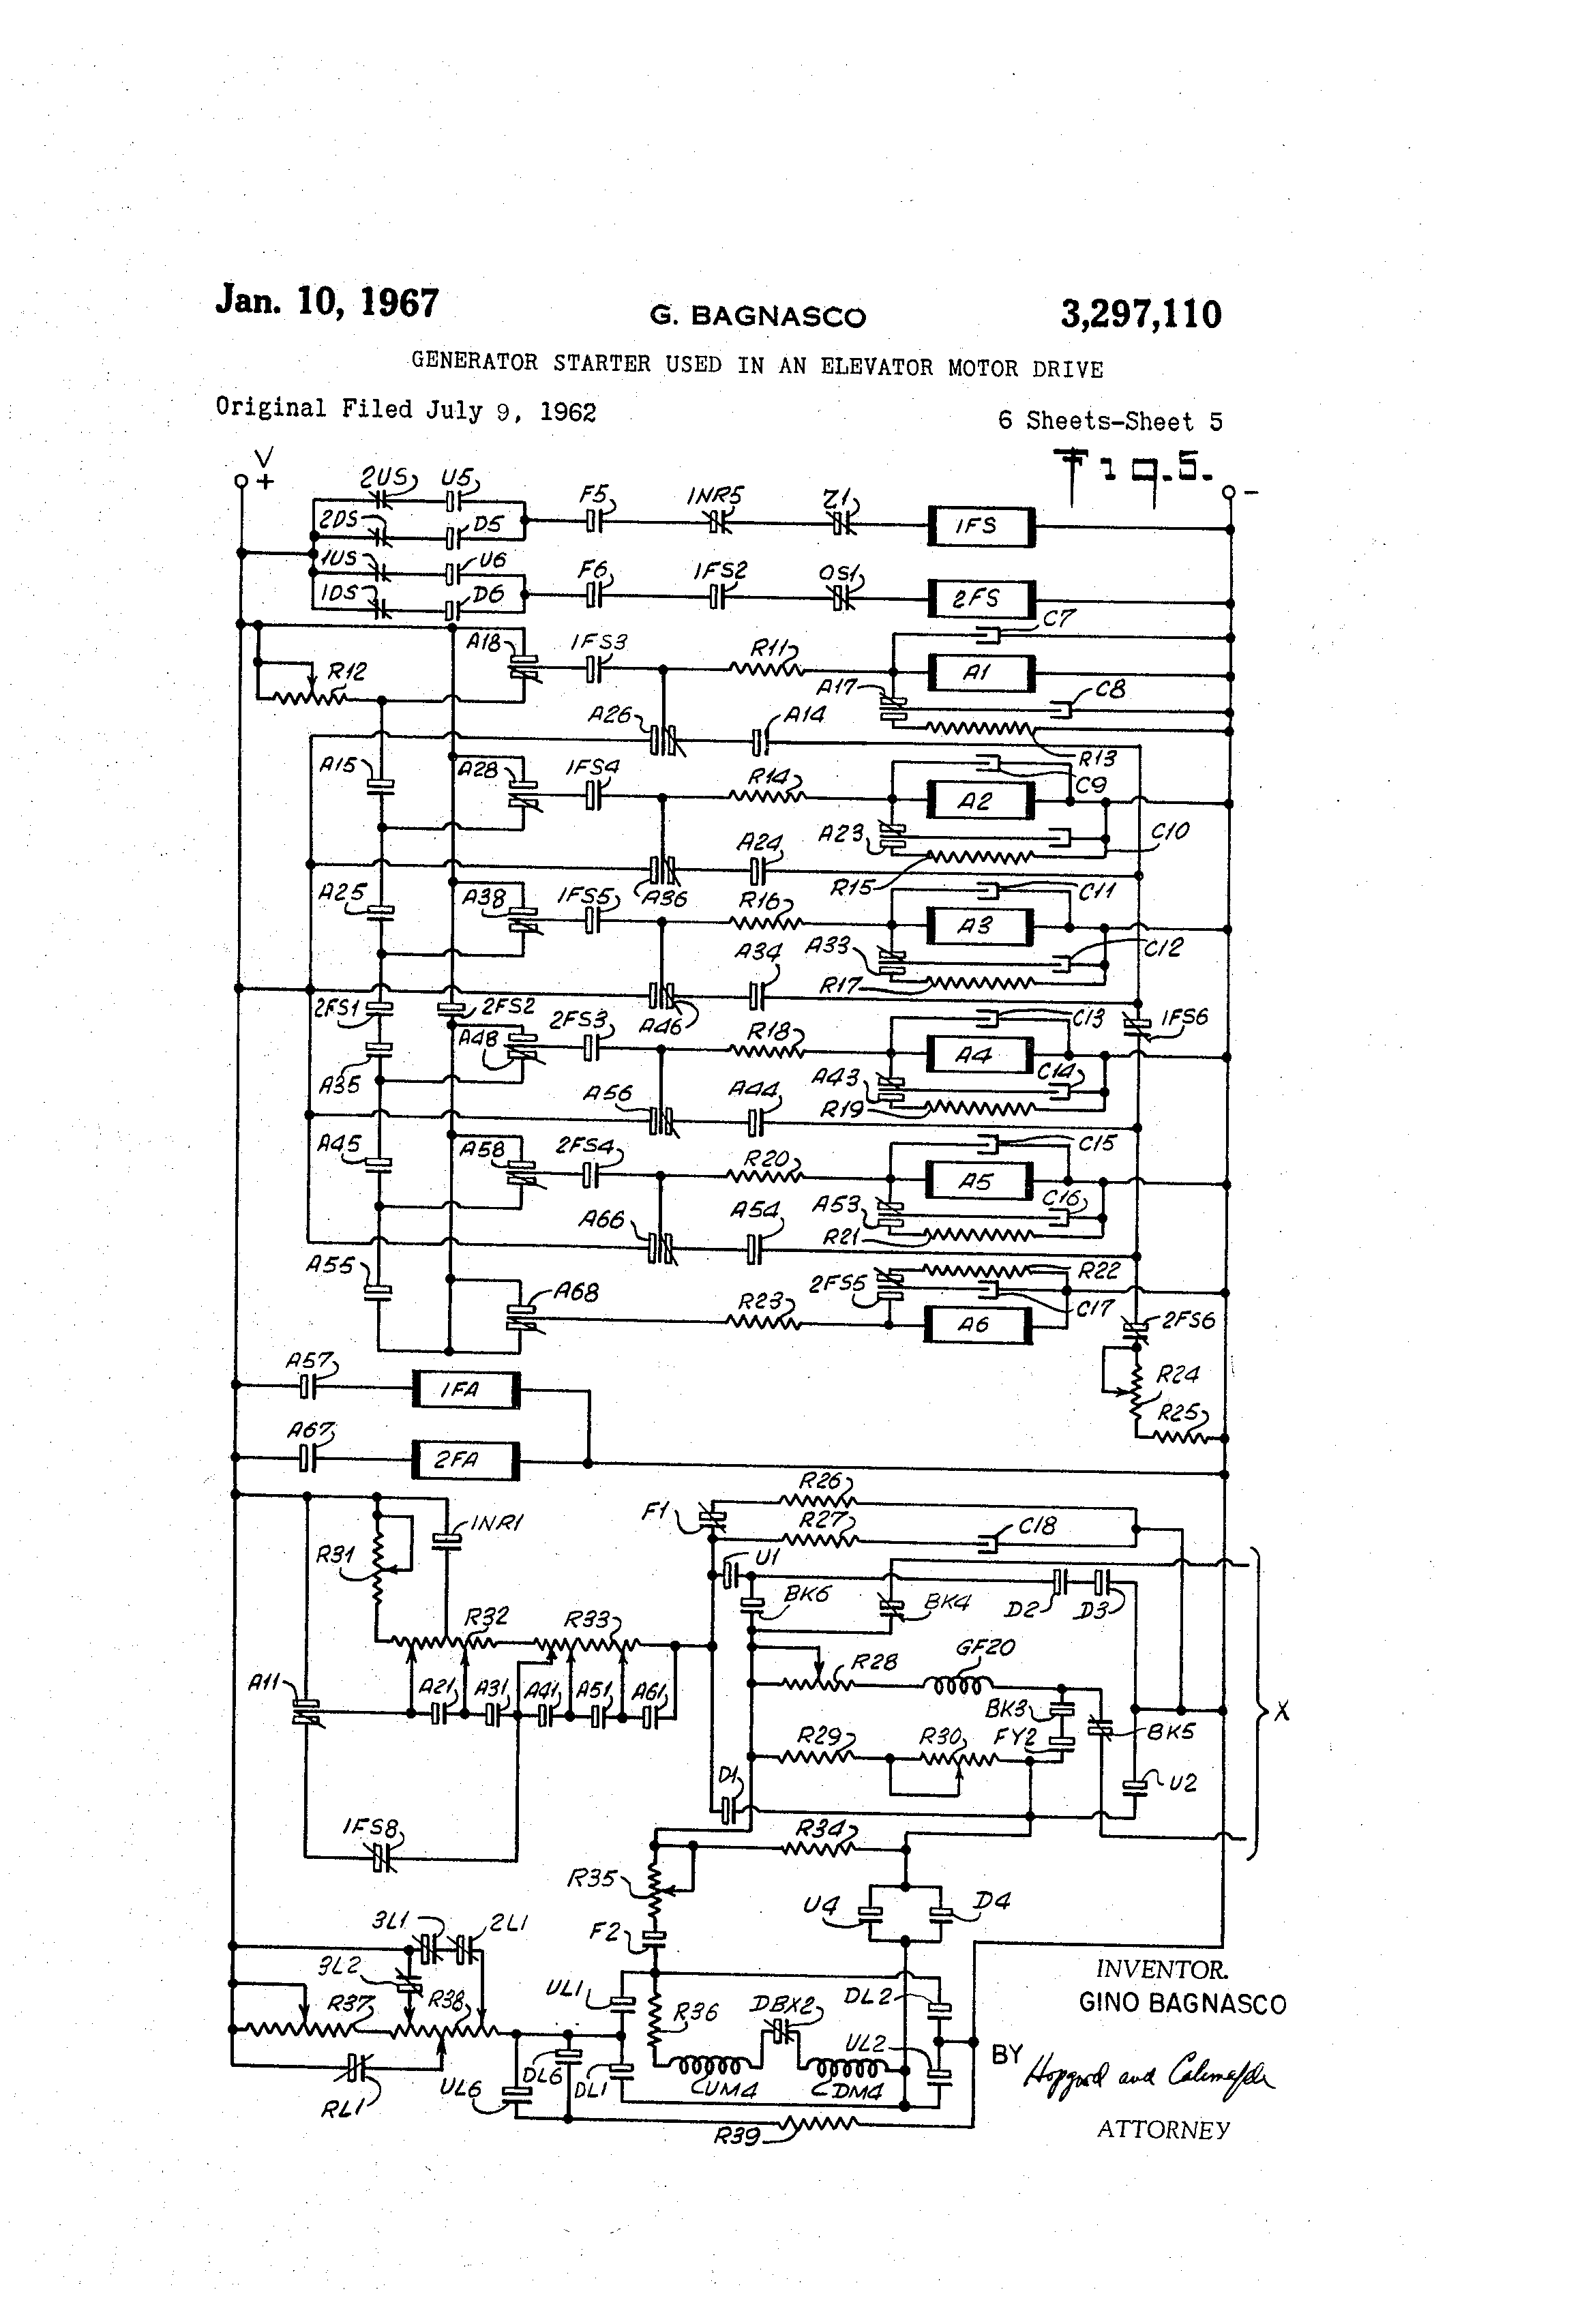 elevator wiring diagram otis wiring diagram elevator wiring diagrams for dodge intrepid elevator wiring diagram pdf otis wiring diagram elevator wiring